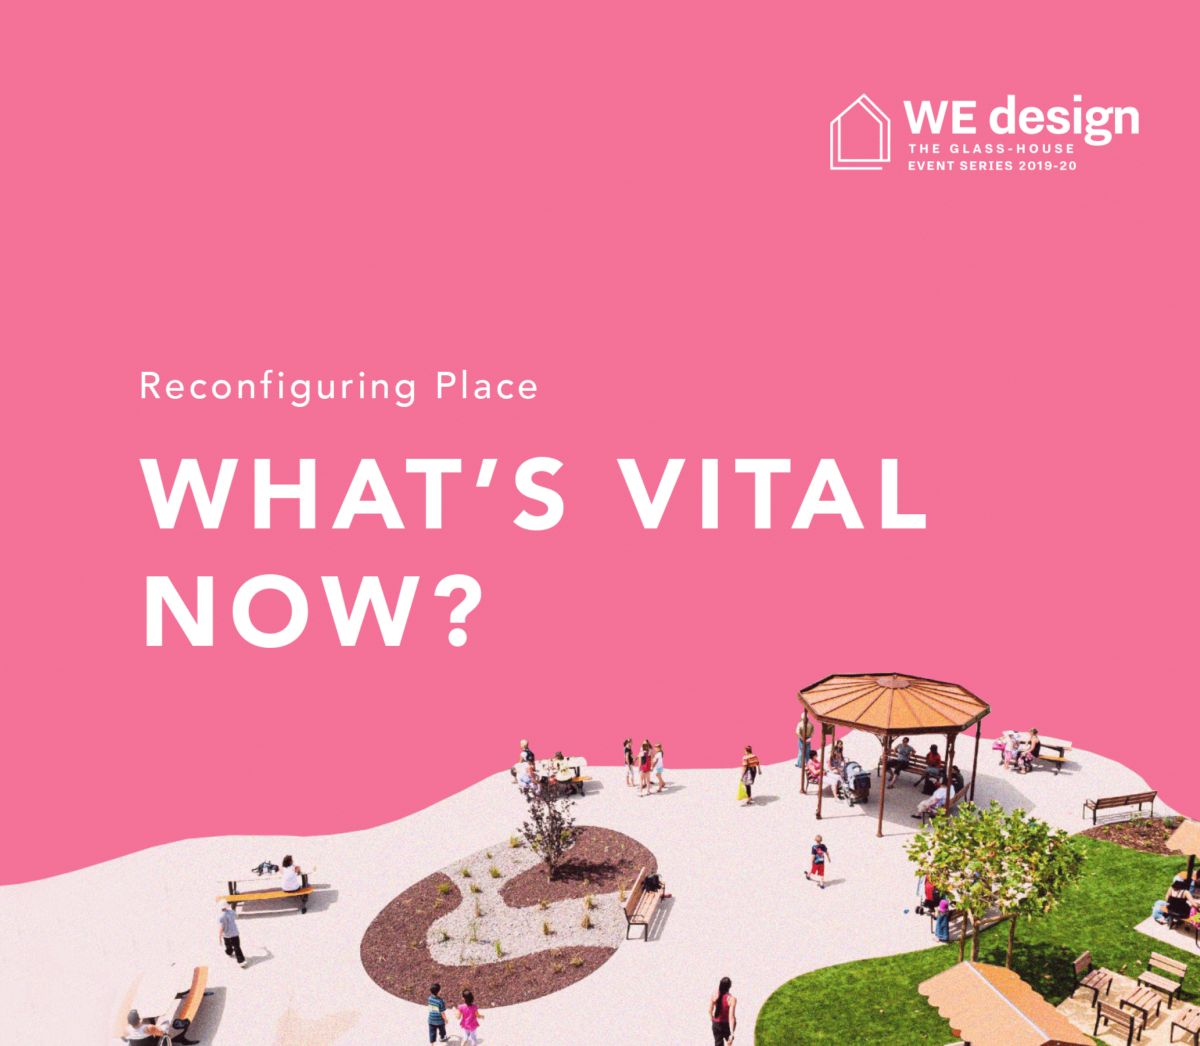 Reconfiguring Place: What's Vital Now?